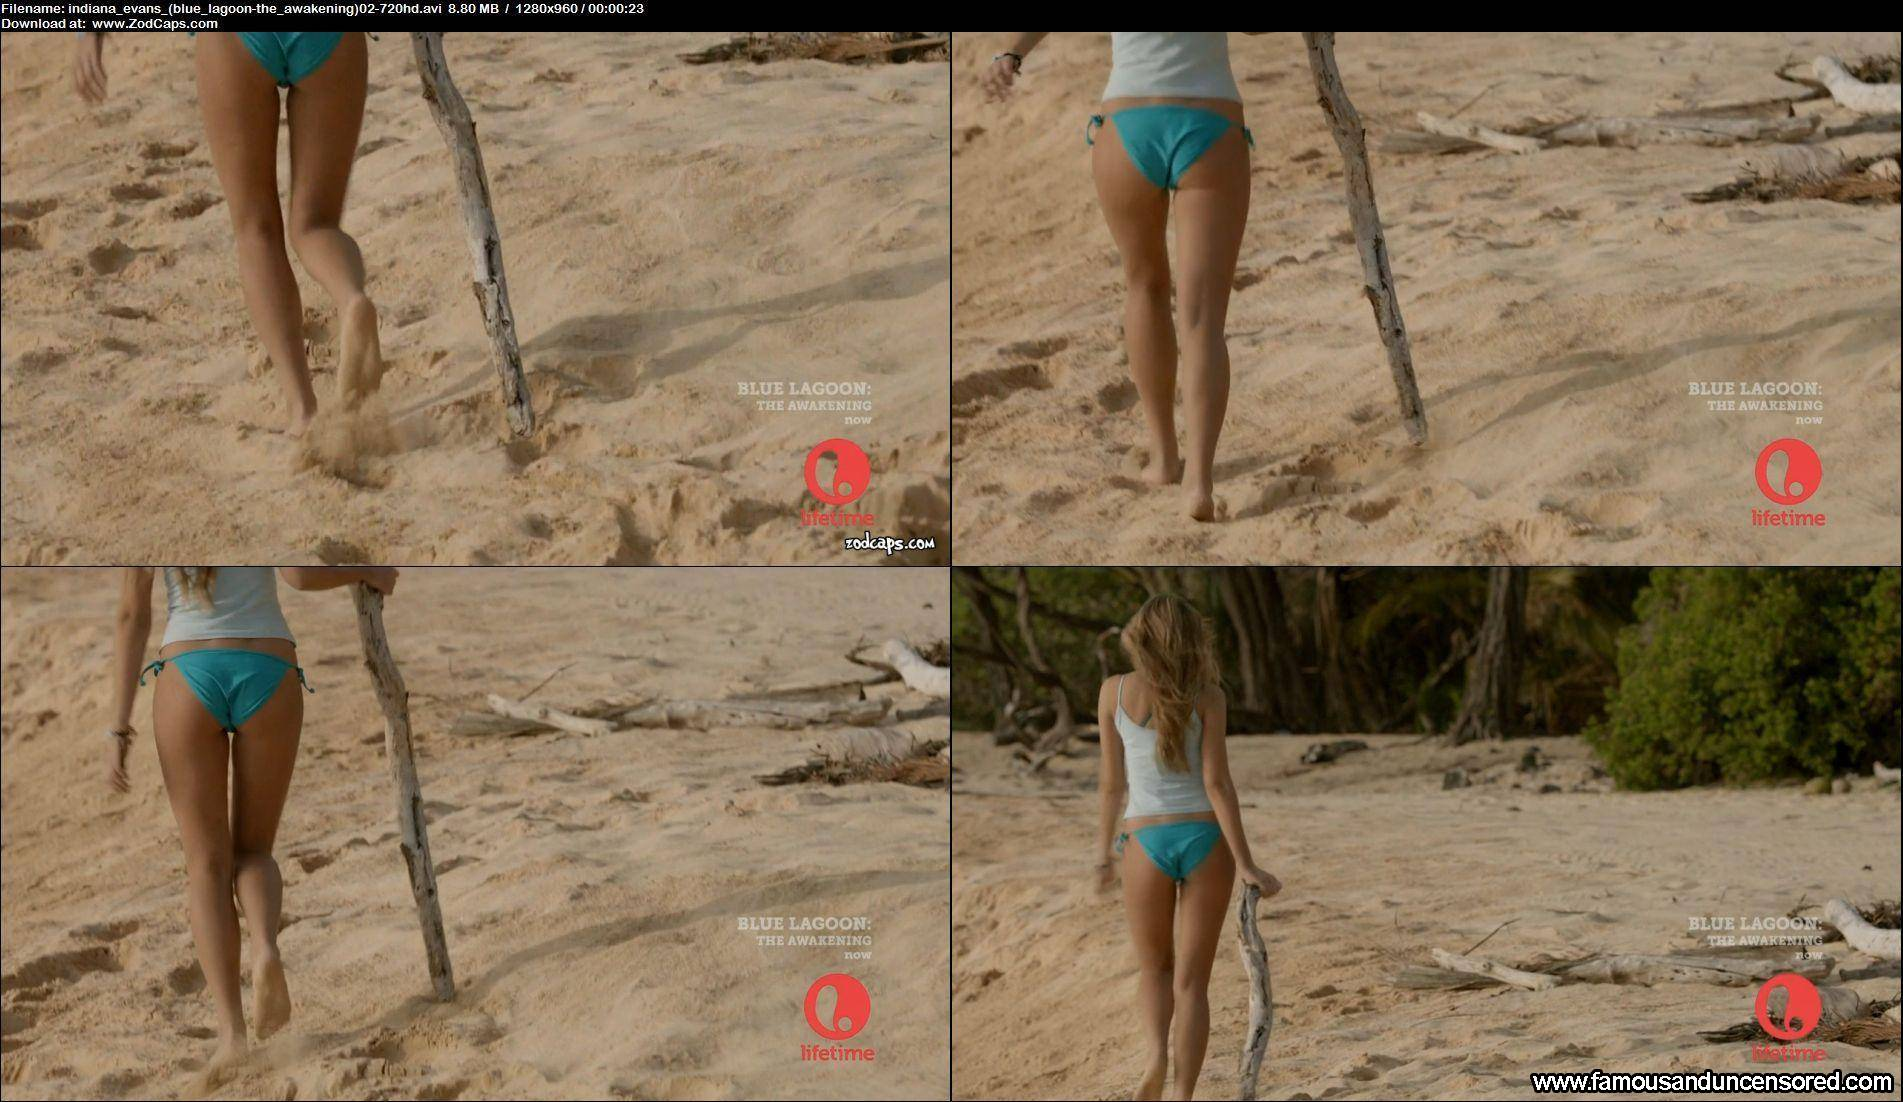 Indiana evans hot matchless message